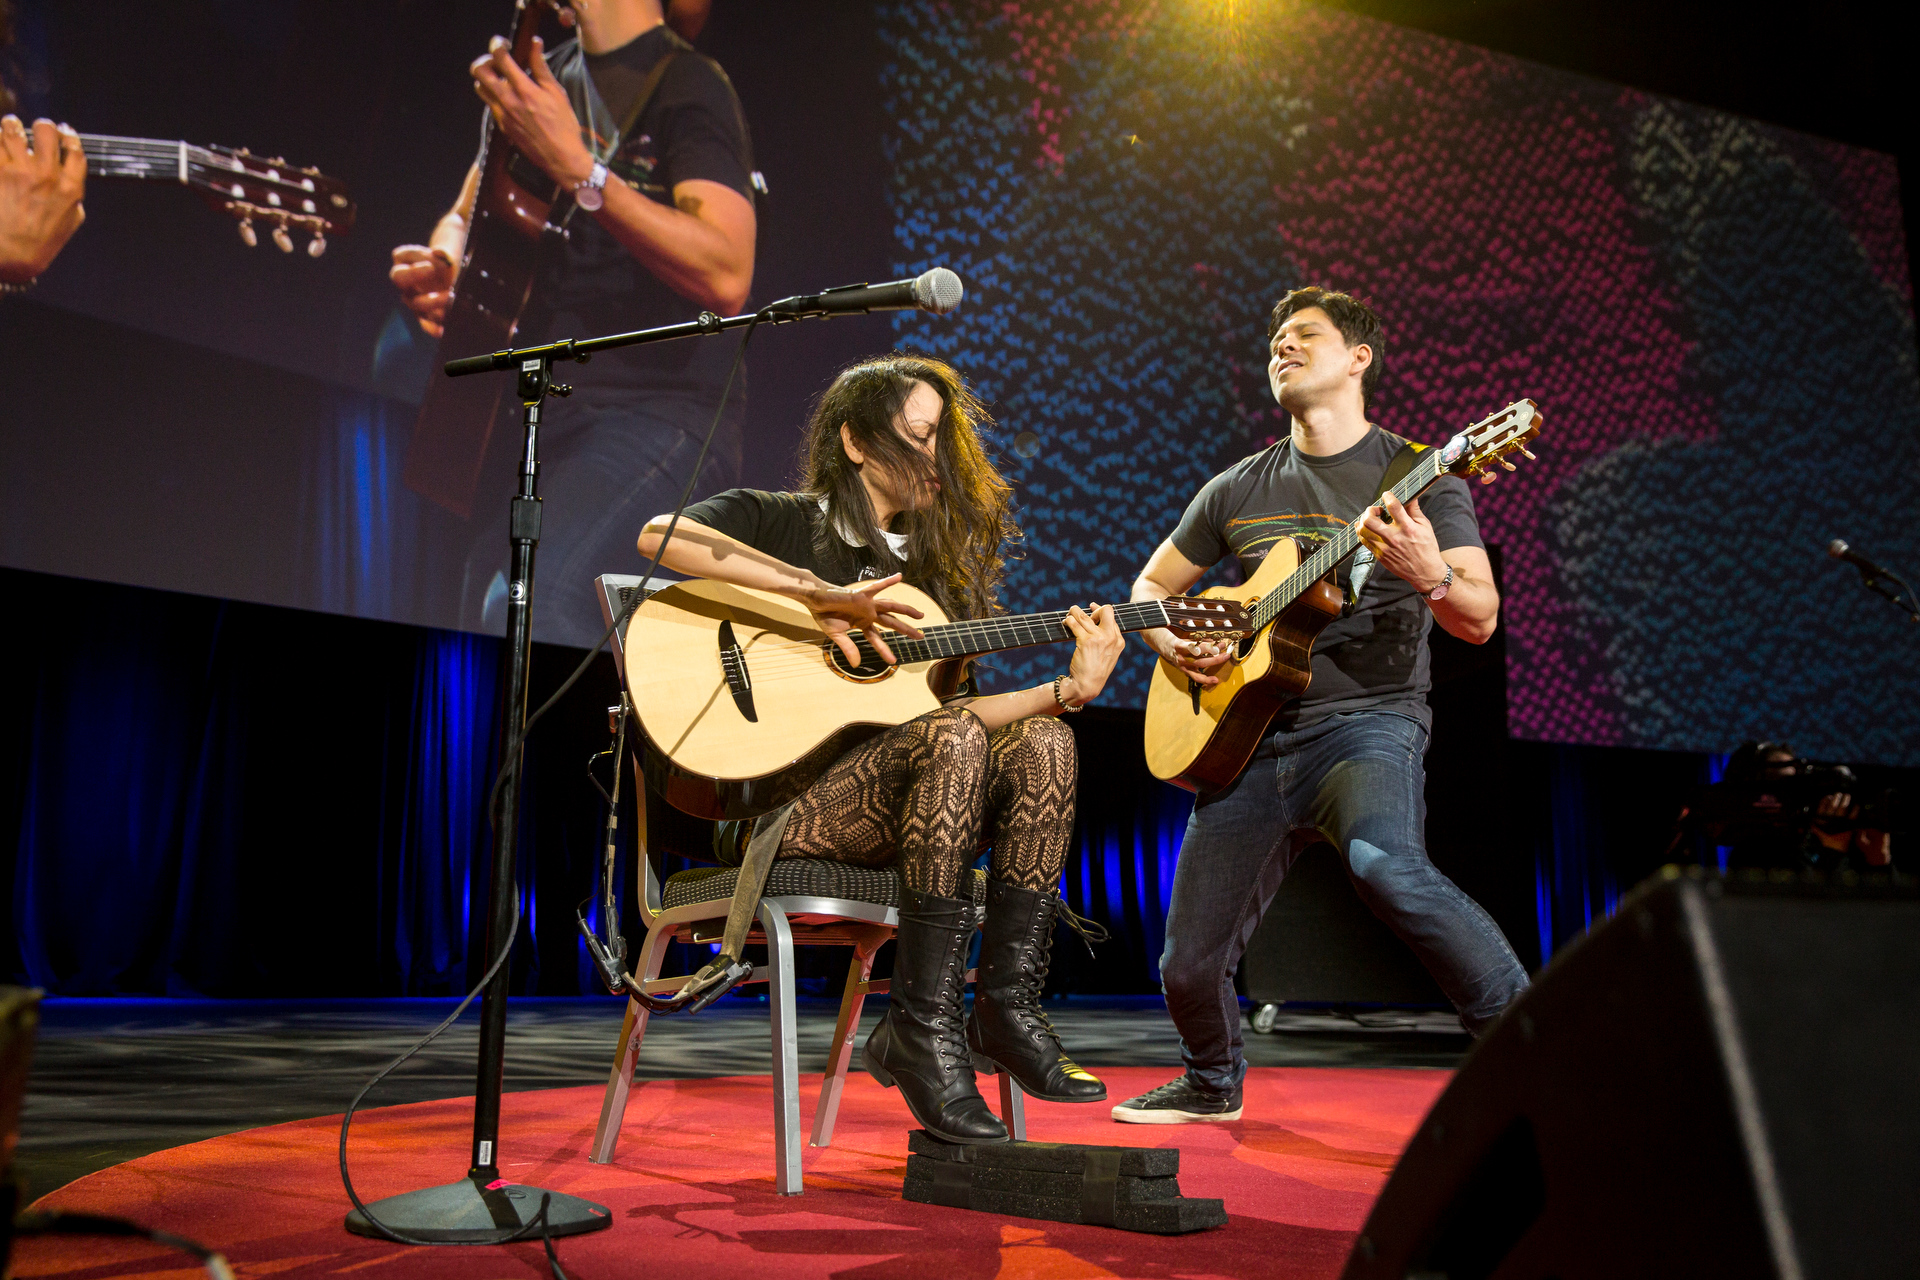 Mexican guitar duo Rodrigo y Gabriela rock out with an electrifying acoustic performance. Photo: Bret Hartman/TED